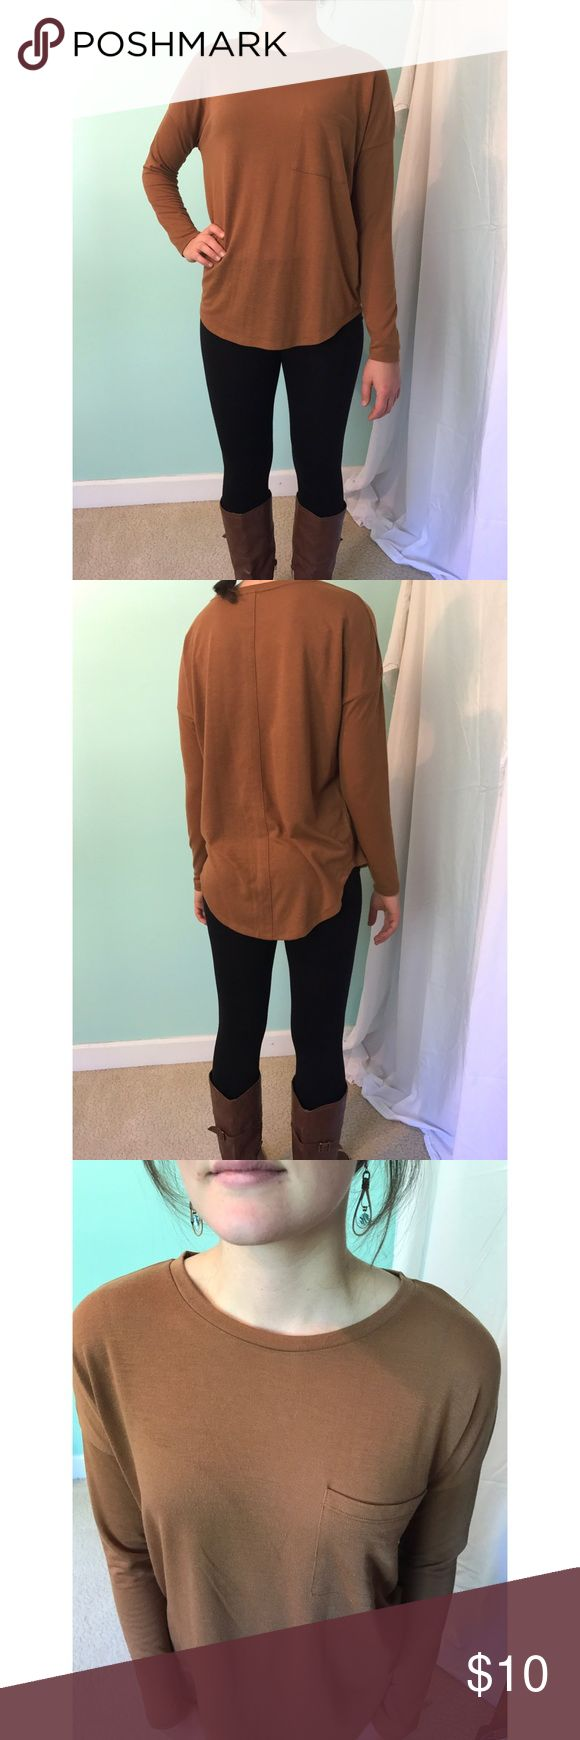 Honey brown long sleeve top! Long sleeve, warm honey brown top with front pocket! Perfect for fall. Only worn twice, great condition. 77% polyester, 19% rayon, 5% spandex. Old Navy Tops Tees - Long Sleeve